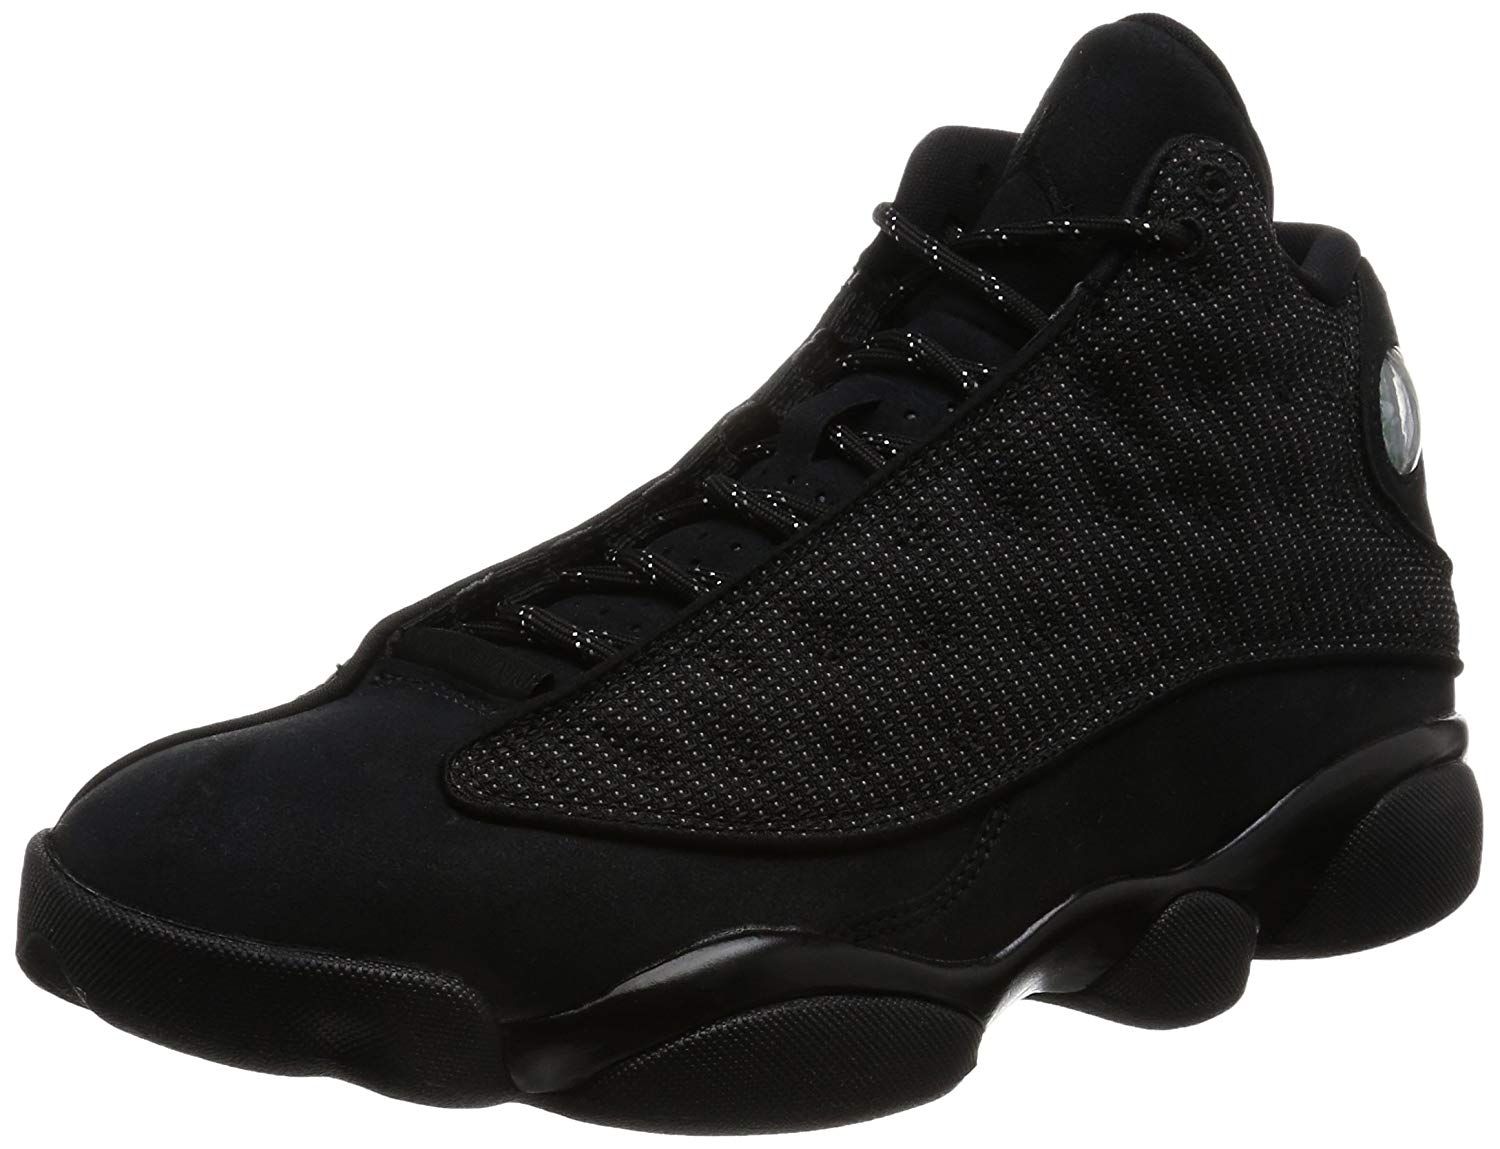 air jordan 13 black cat